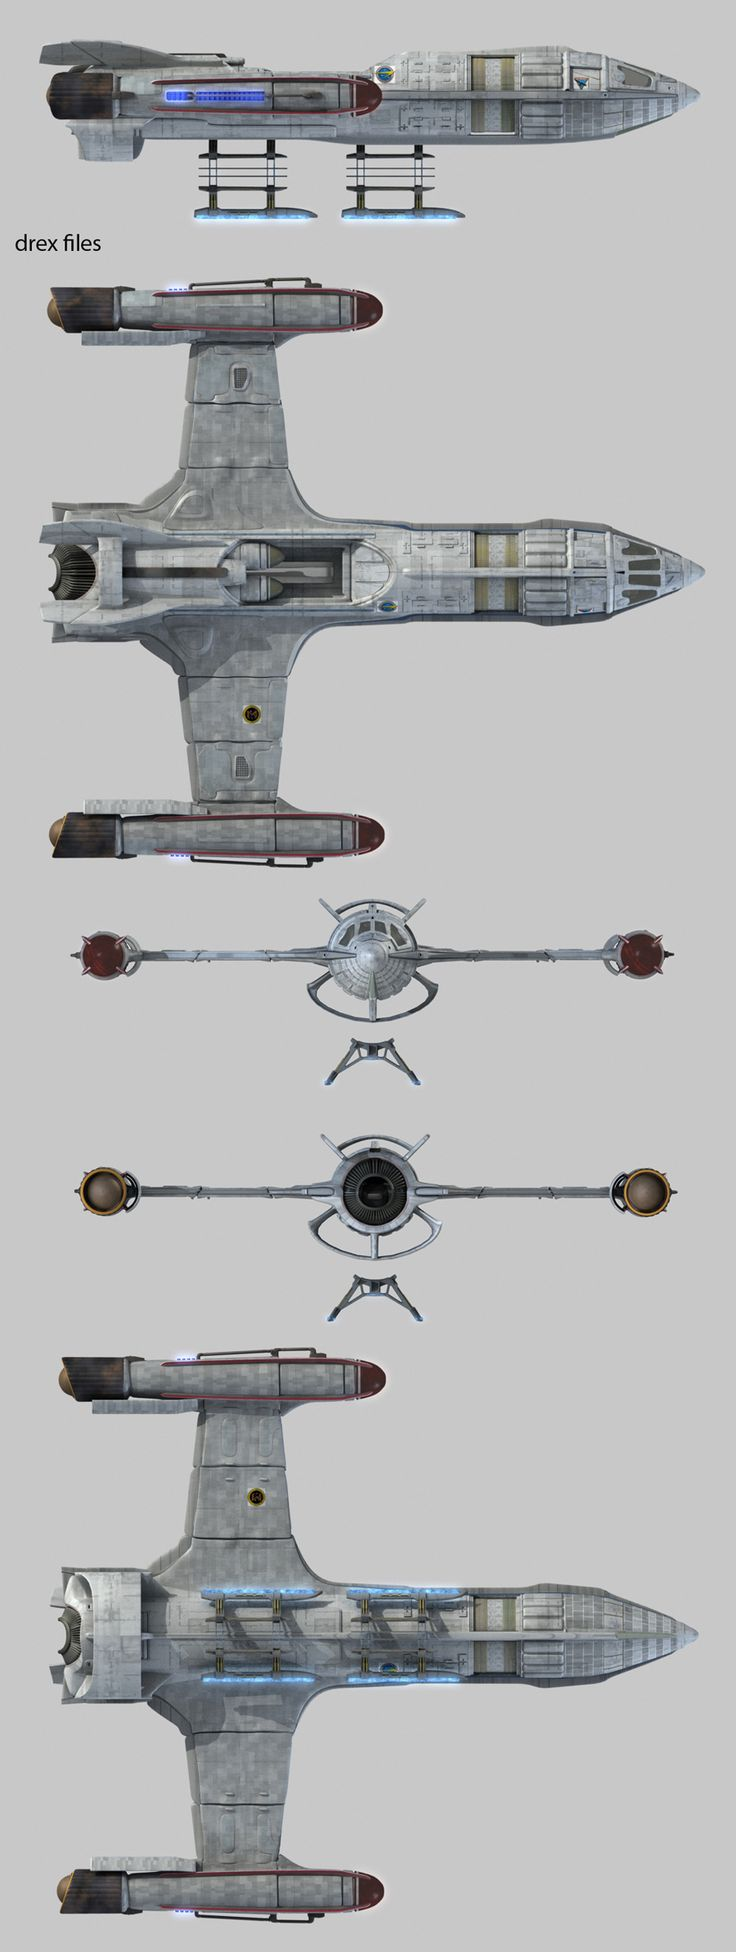 Starfleet vessel from Enterprise First starfleet ship to include the warp engine designed by Henry Archer.